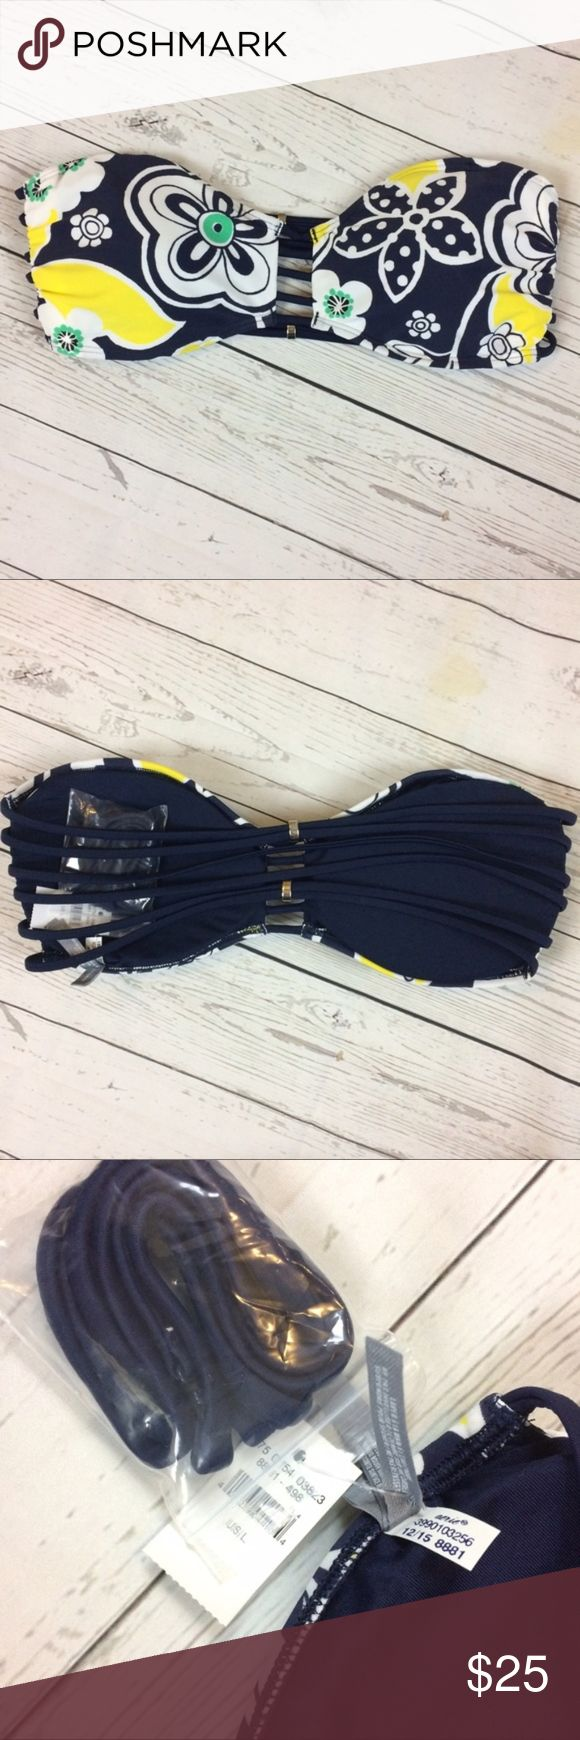 NWT Aerie Floral Navy Beaded Bikini Bandeaux Large New with tags. Strappy back with beaded straps. Removable straps included. Navy base color. Excellent new condition. aerie Swim Bikinis